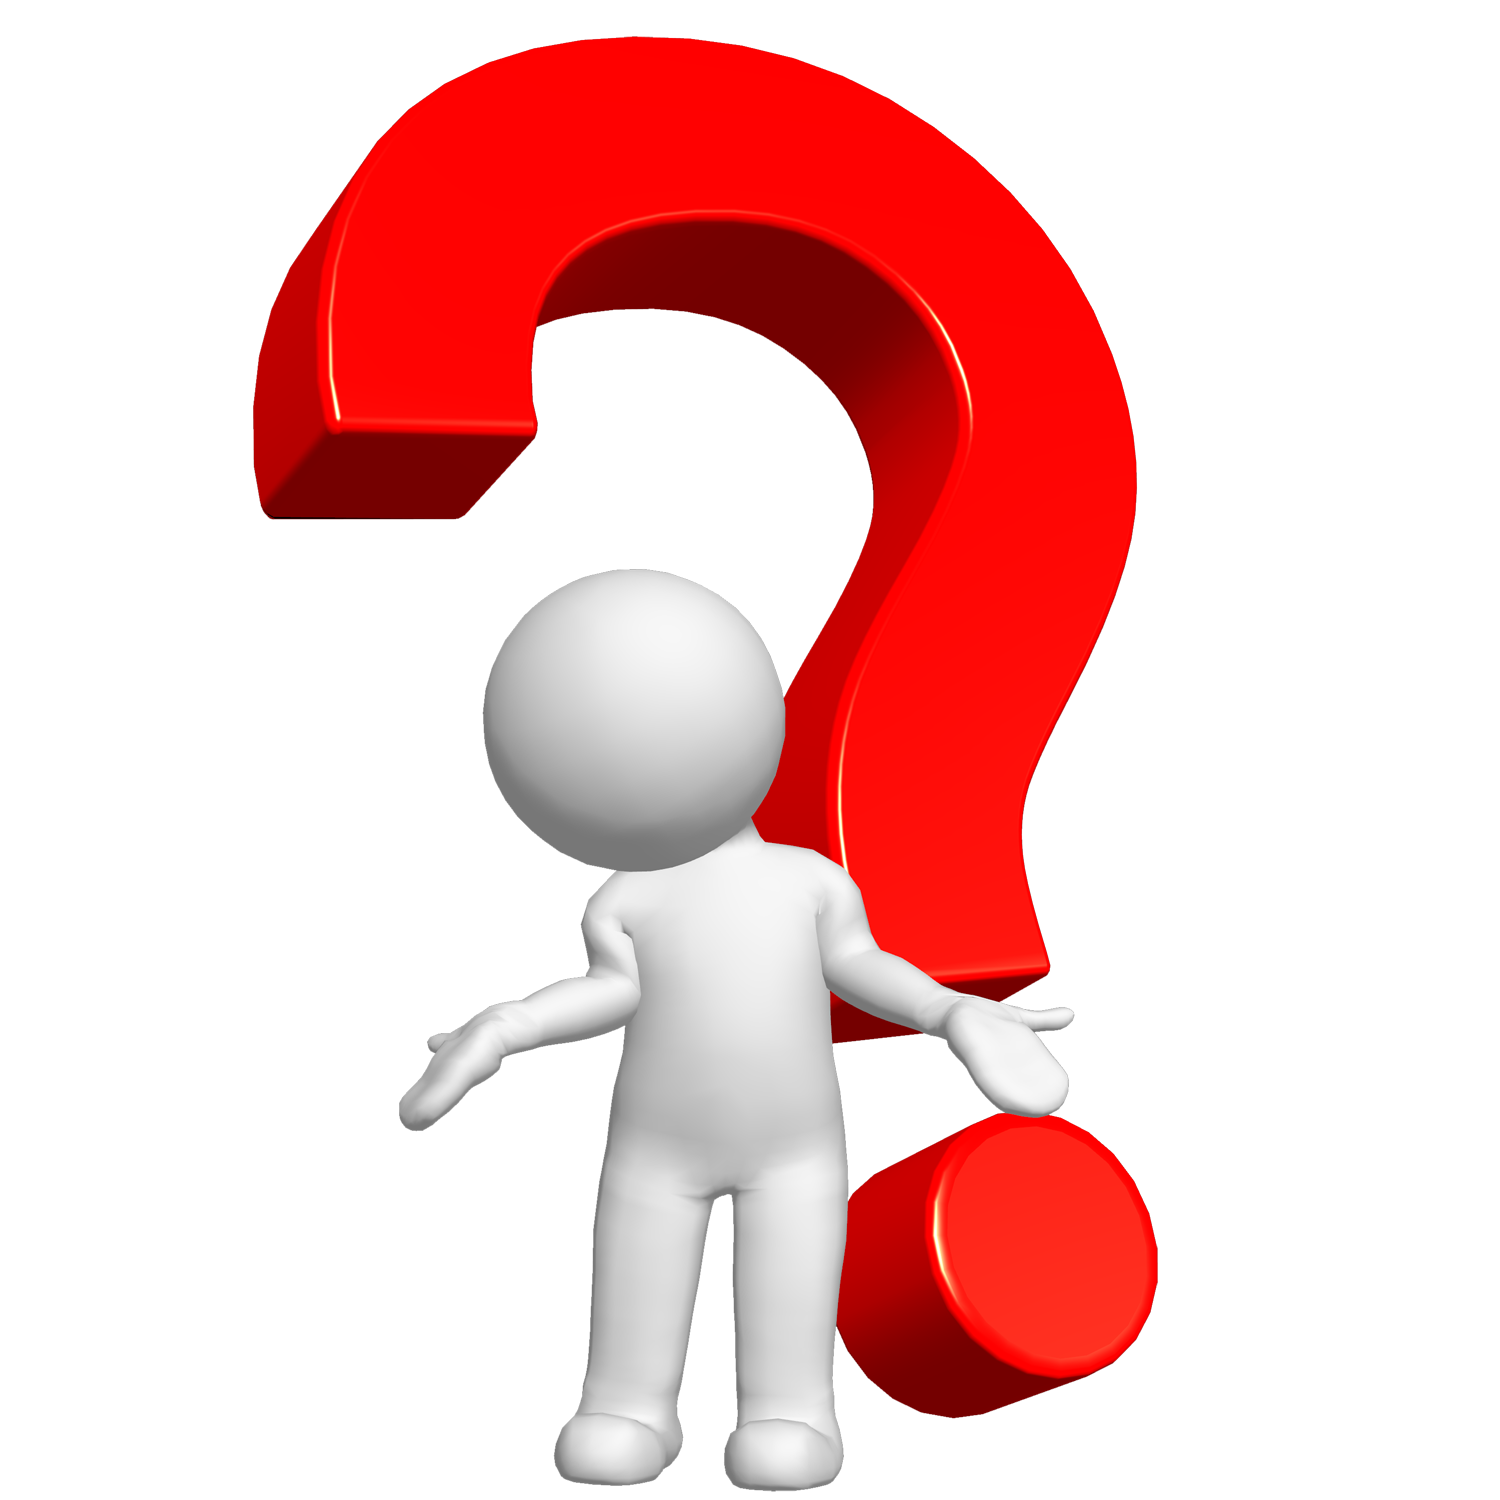 Guy clipart question mark, Guy question mark Transparent FREE for download  on WebStockReview 2021